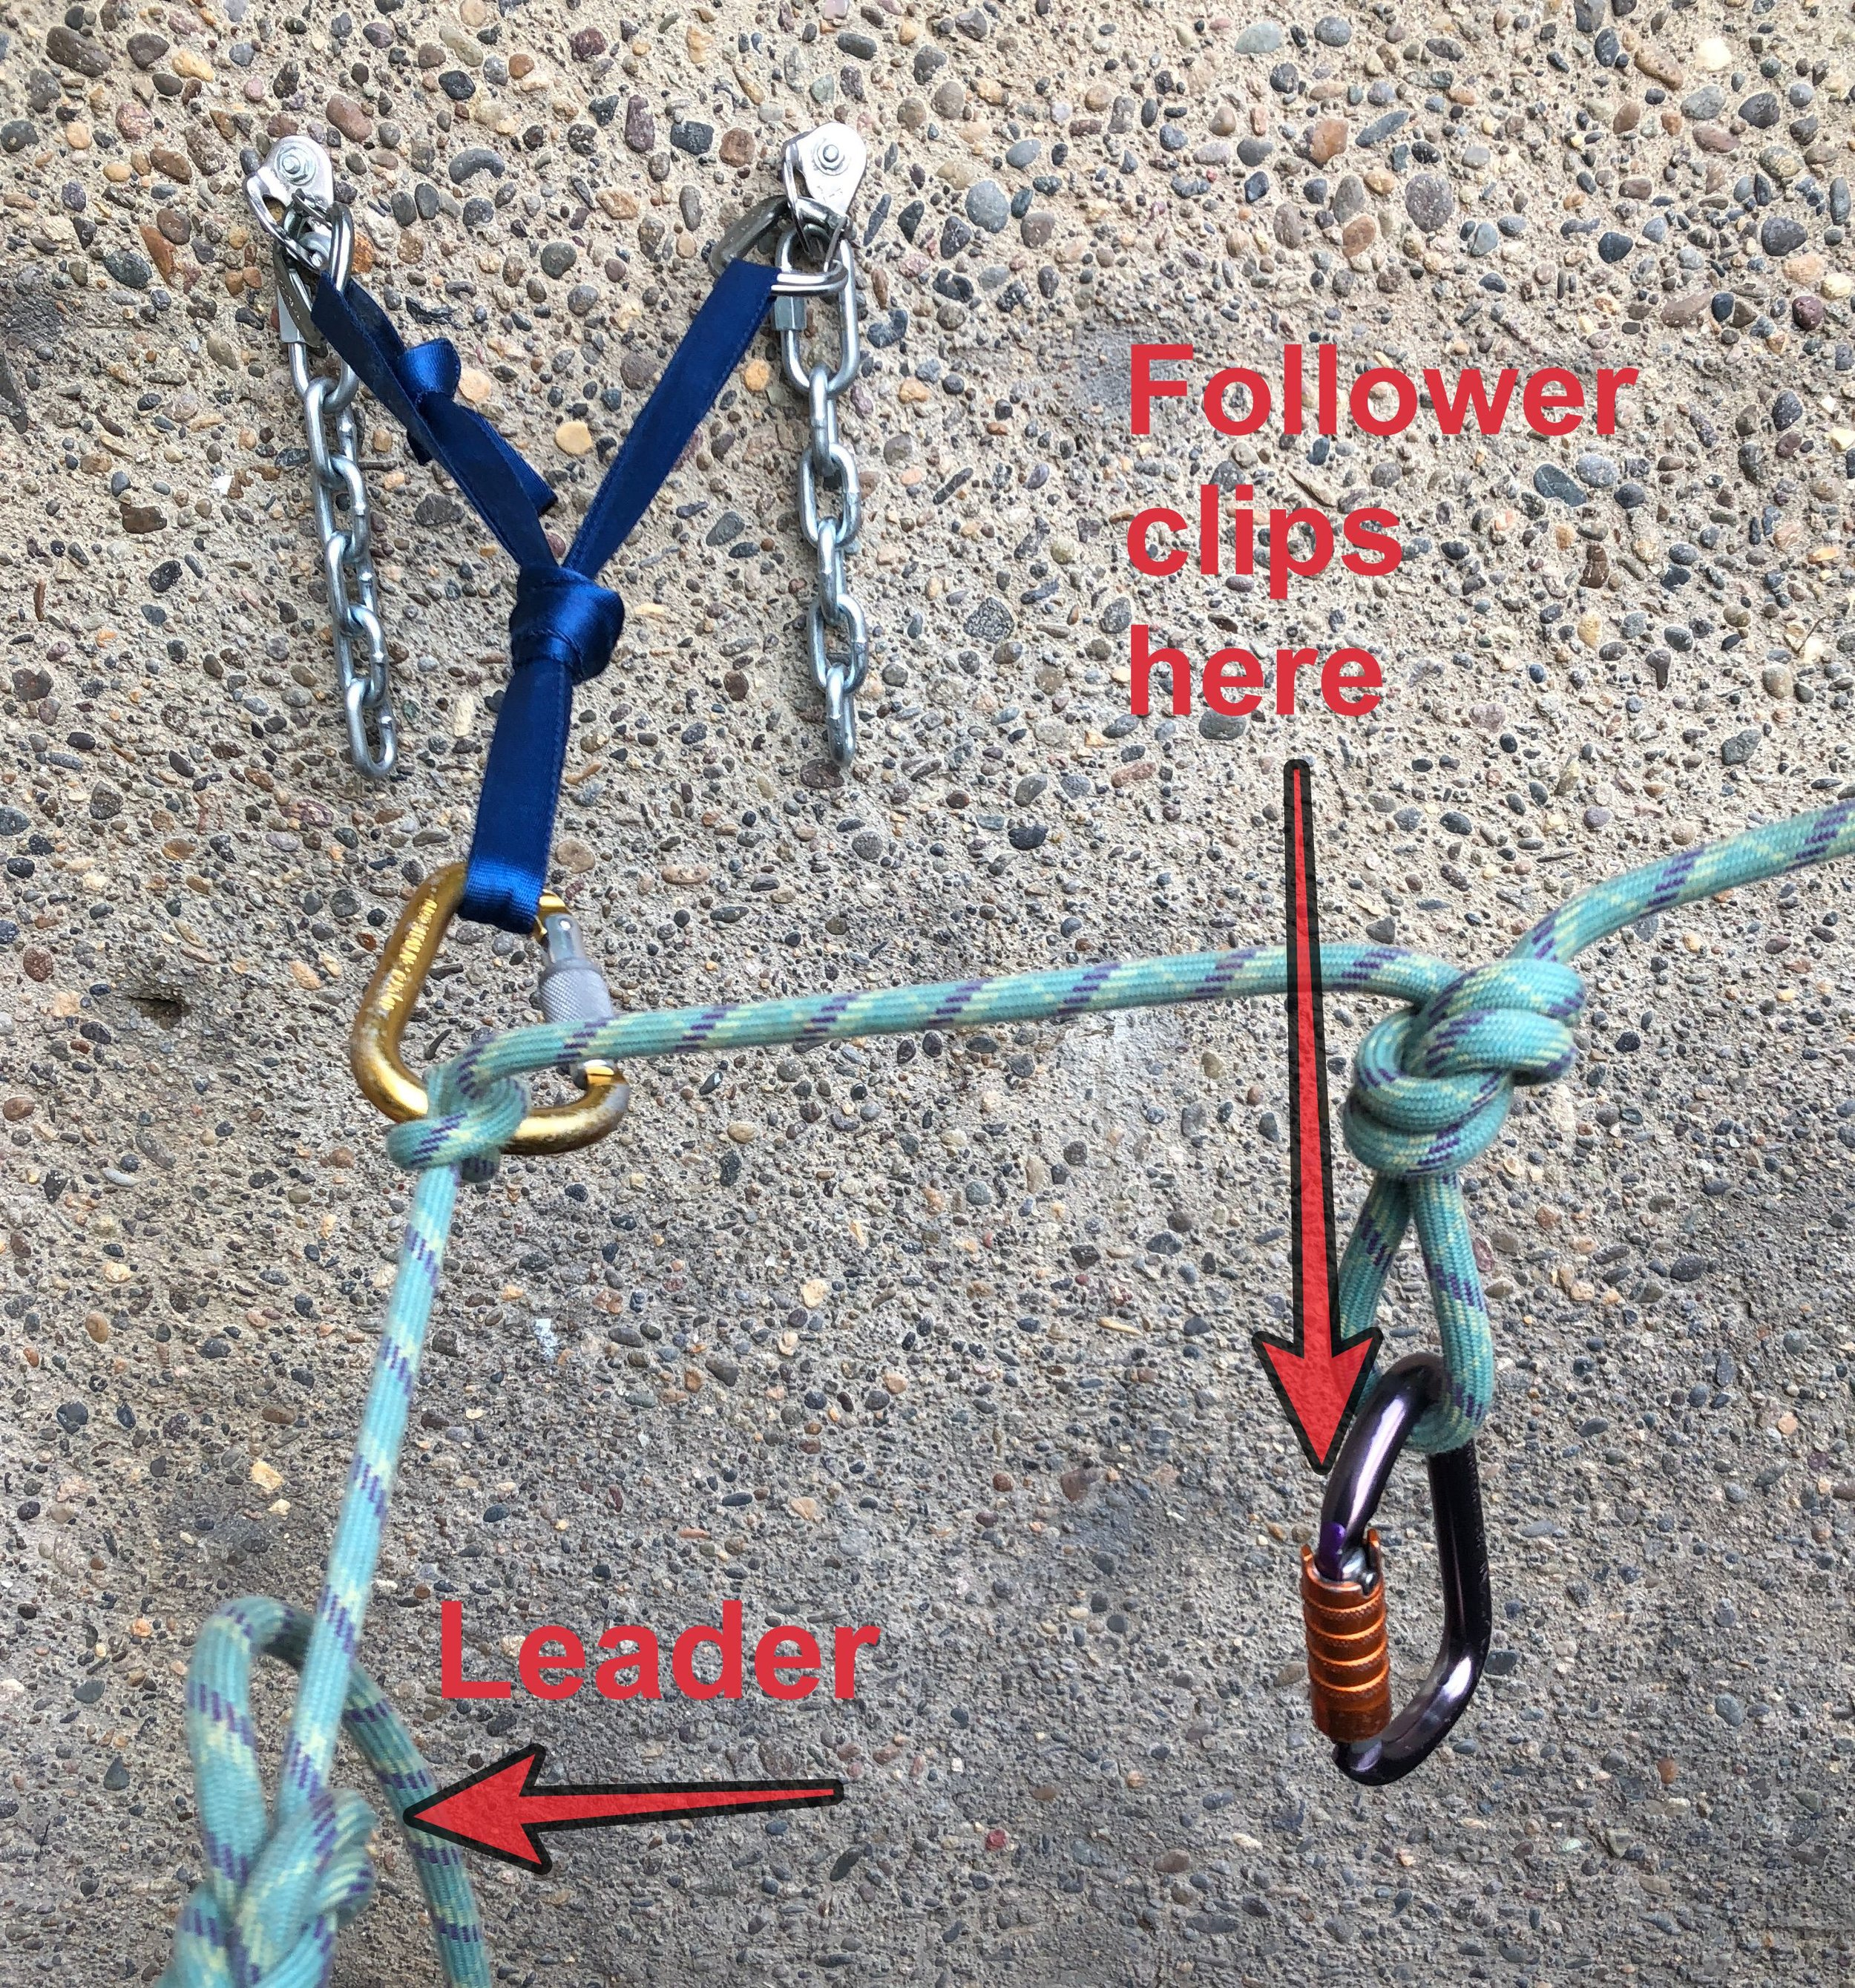 backside clove hitch arrow 2.JPG